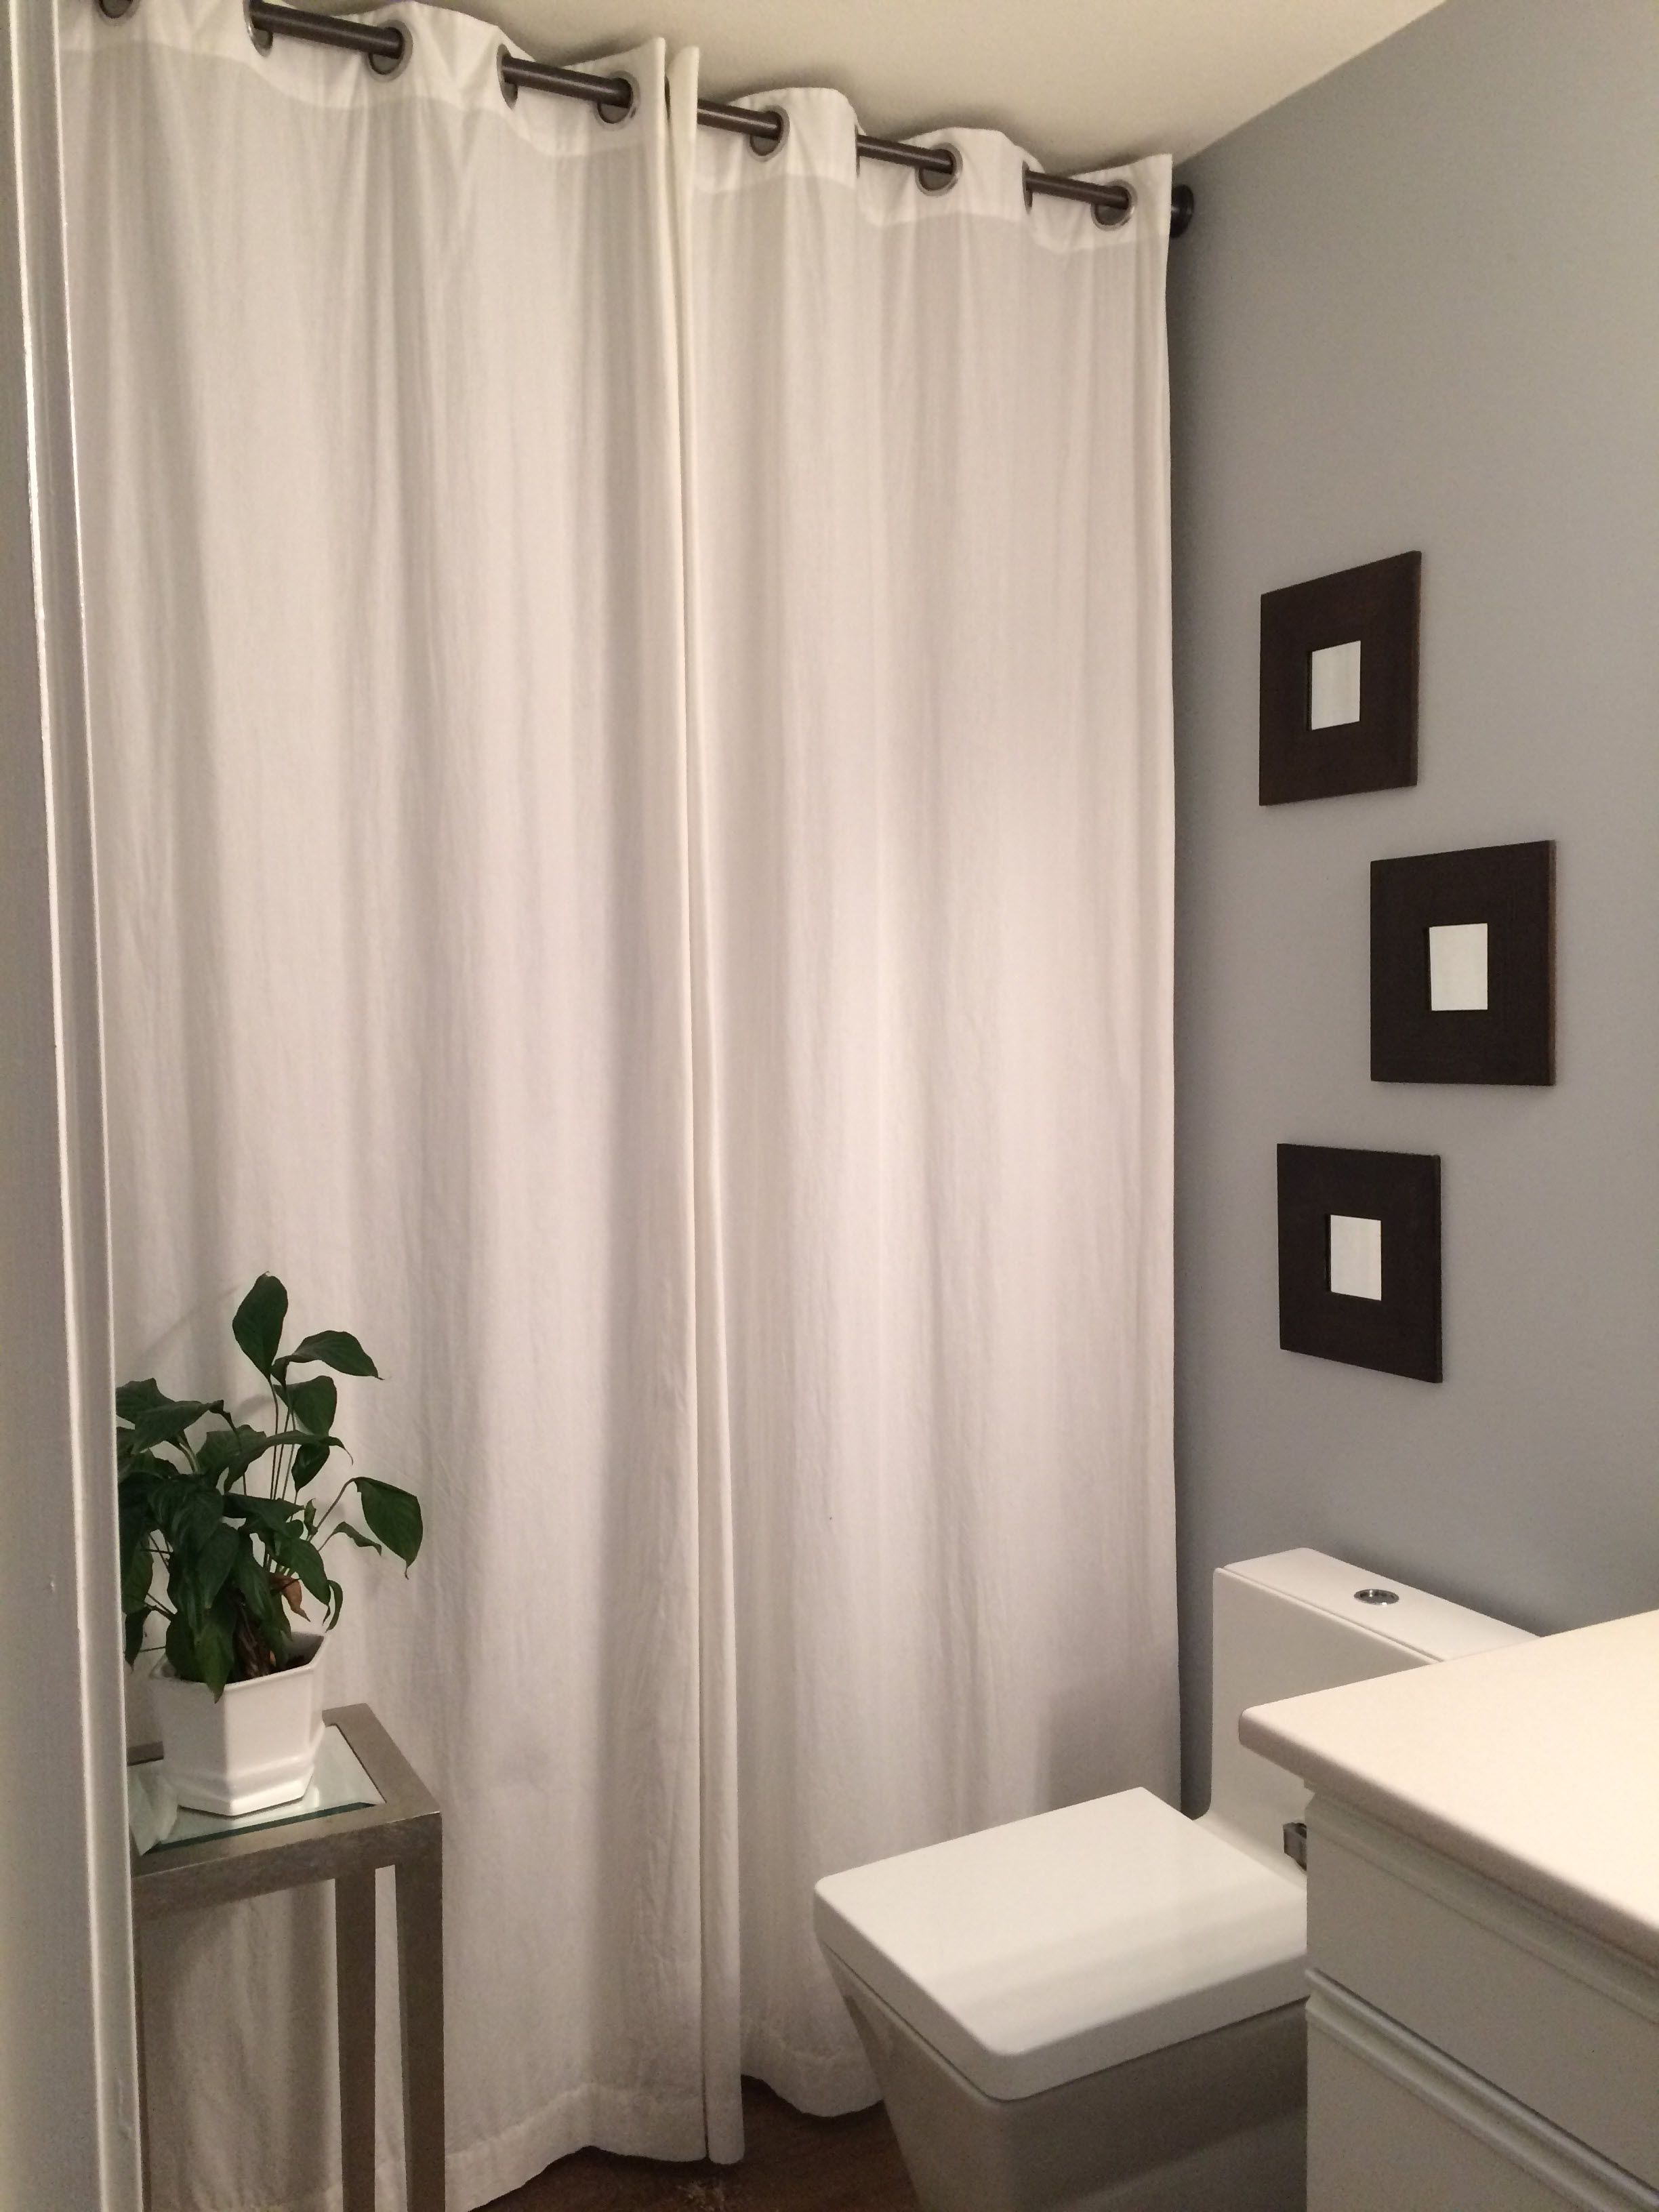 Bathroom Drapes Use A Full Height Drape In A Full Bathroom To